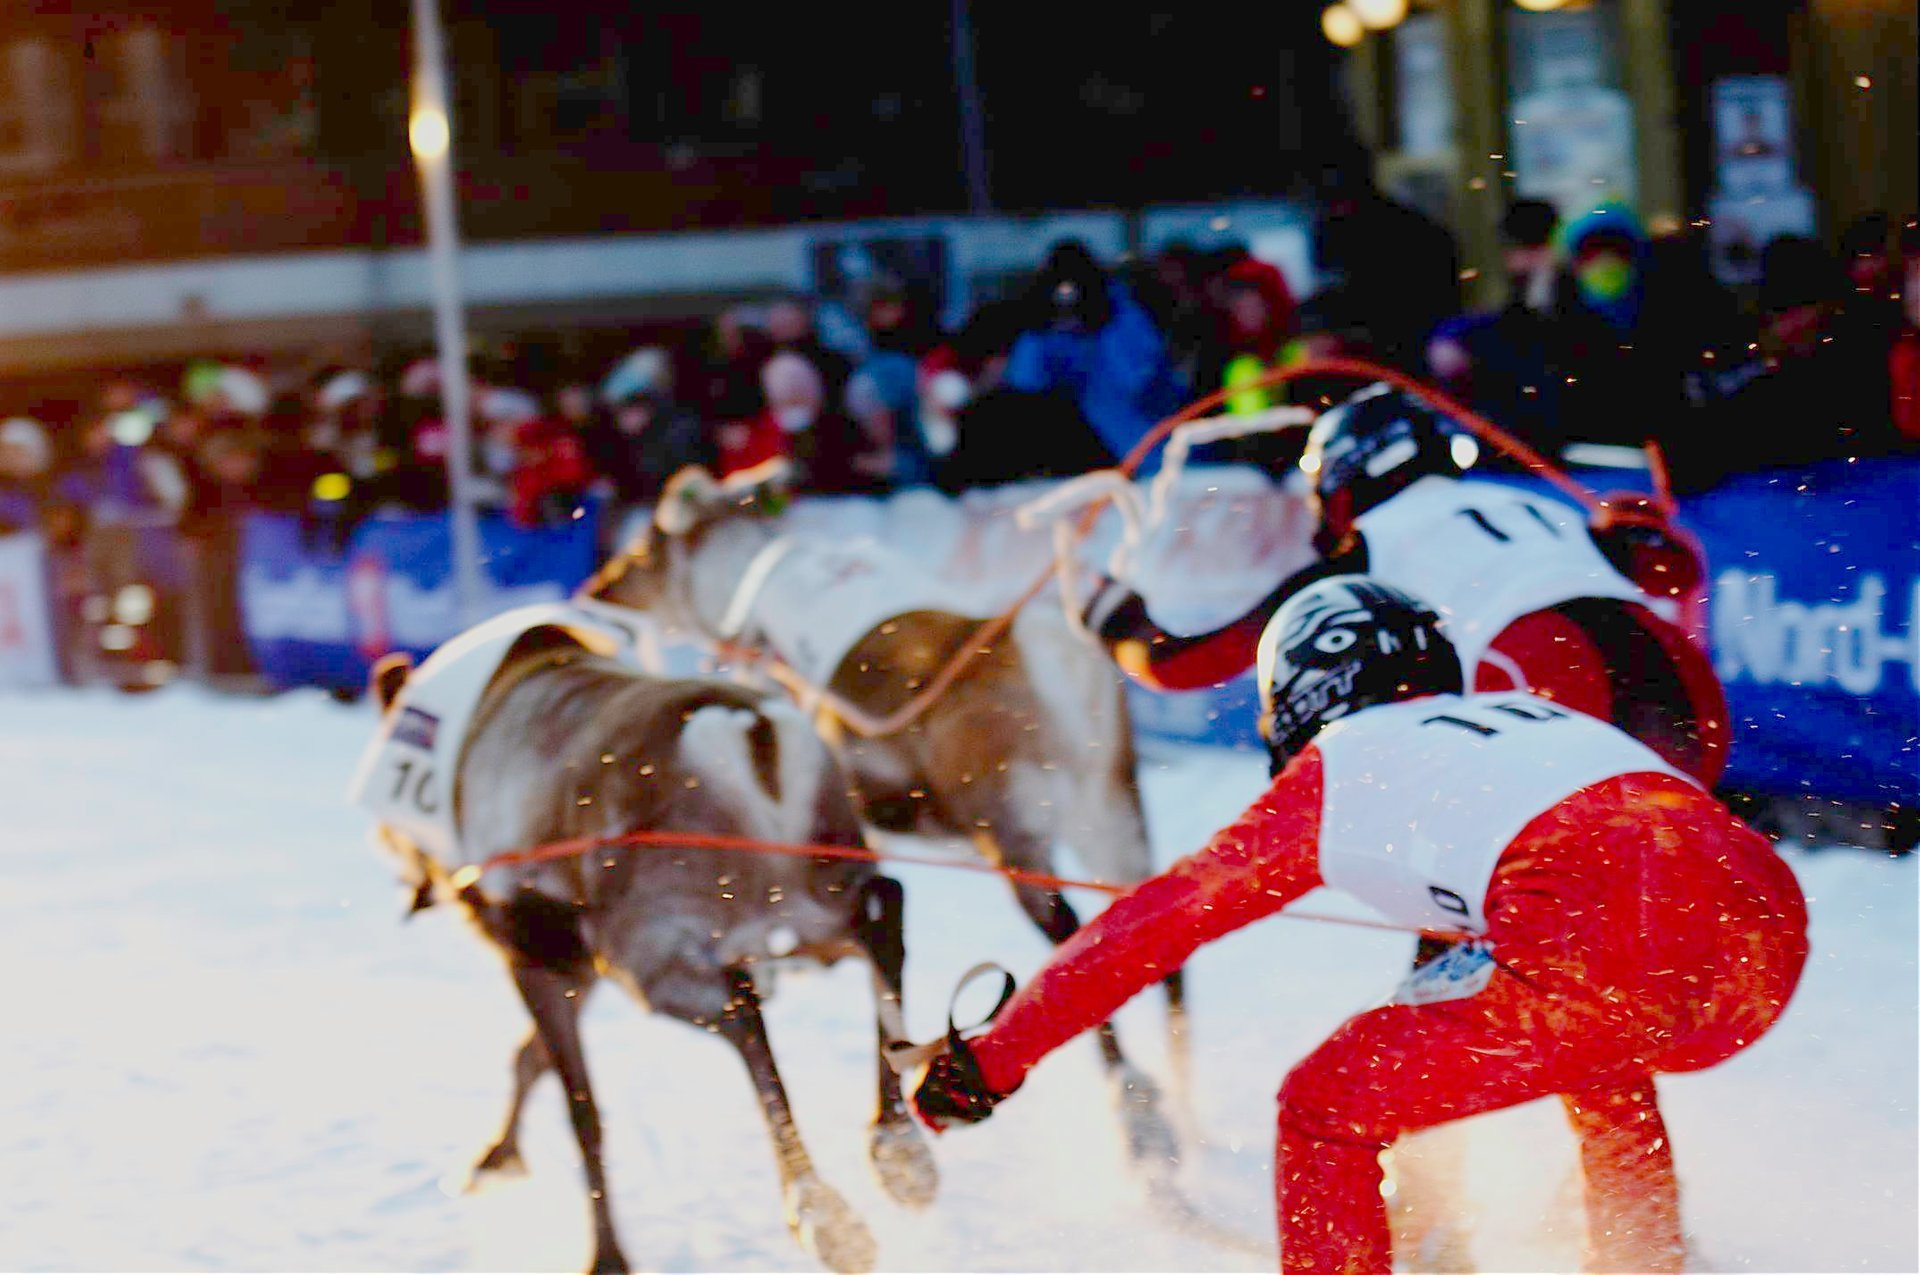 Reindeer racing in Tromsø 2020